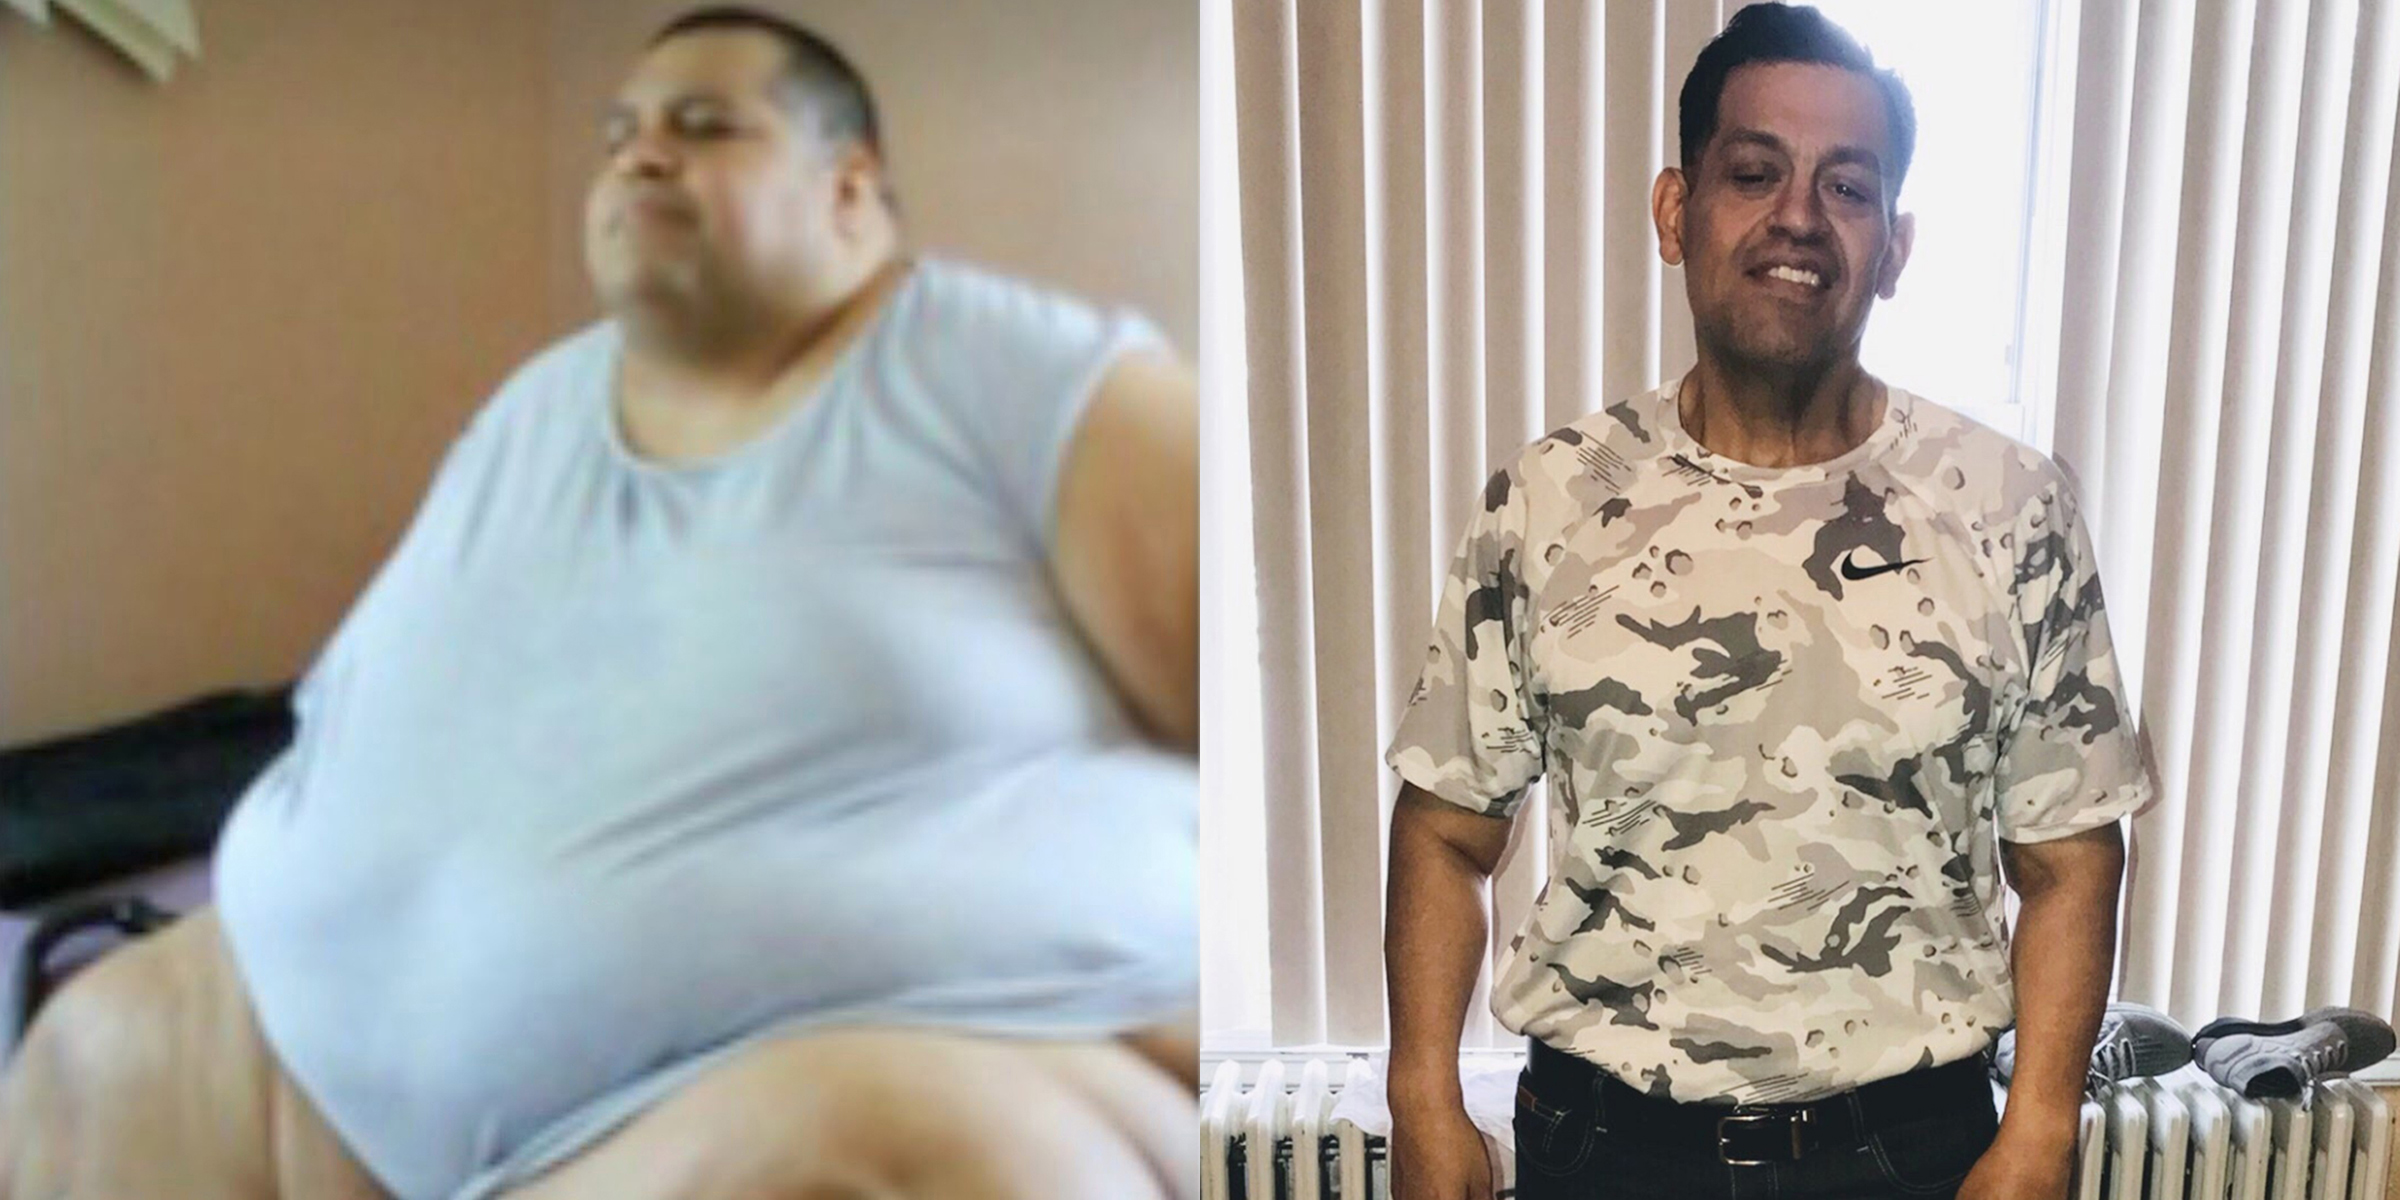 How to lose over 500 pounds: Man loses 616 pounds by tracking food